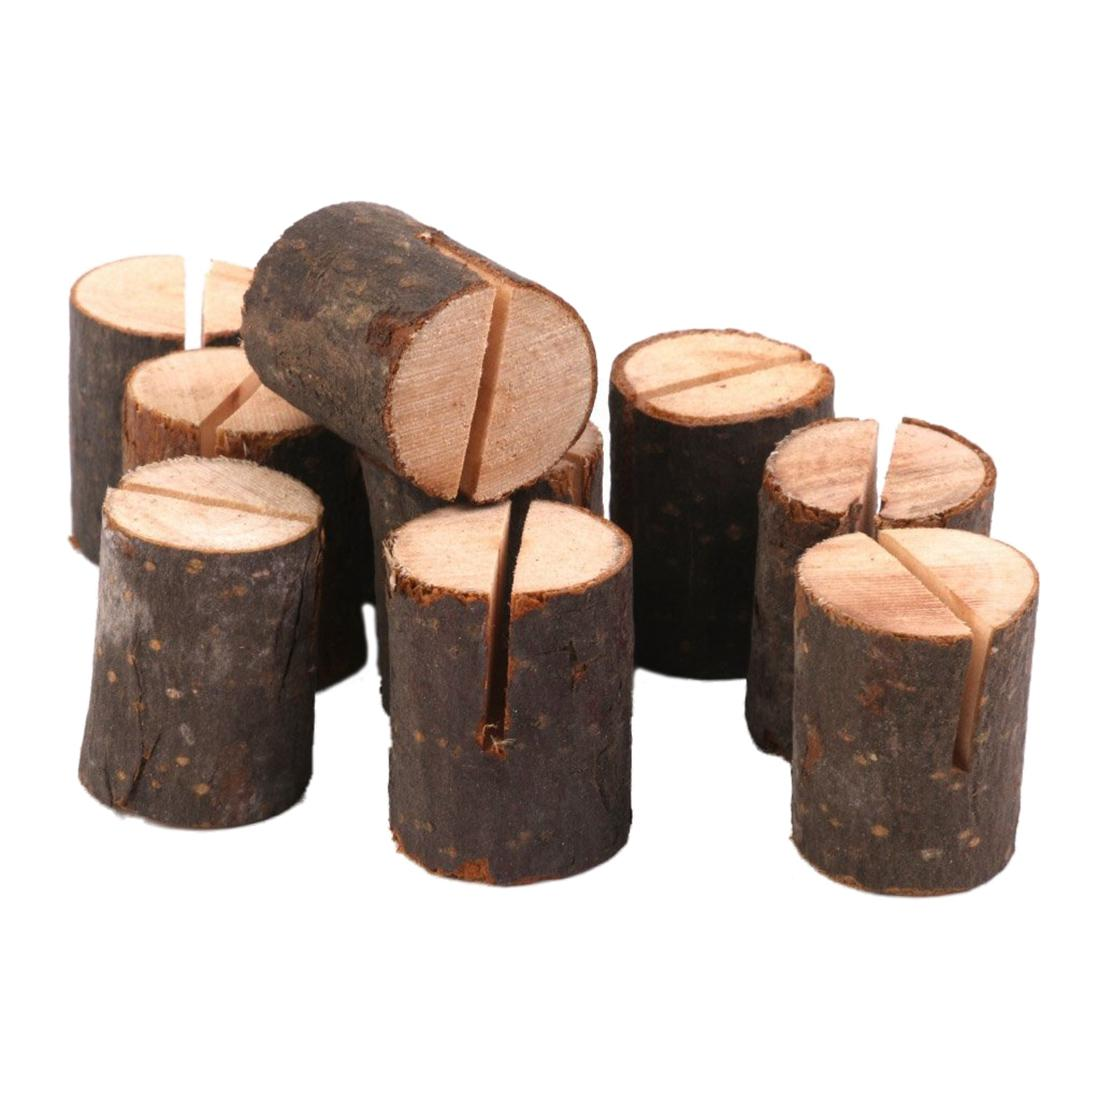 10pcs Wooden Stump Shape Wedding Party Reception Place Card Holder Stand Number Name Table Menu Picture Photo Clip Card Holder